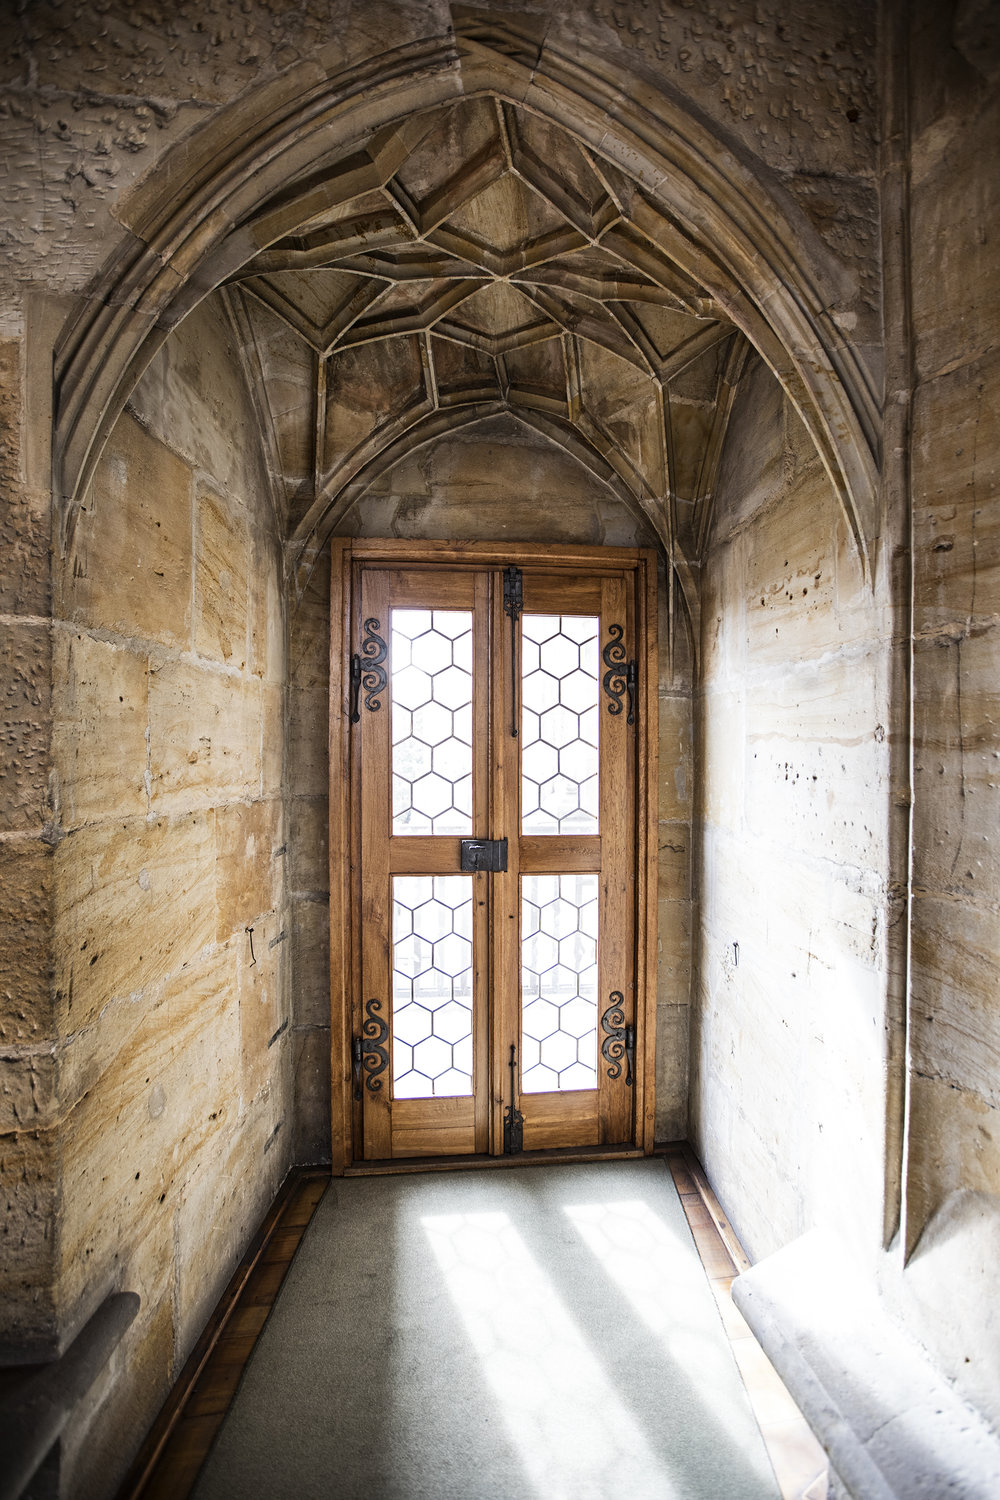 A doorway in the old Royal Palace.